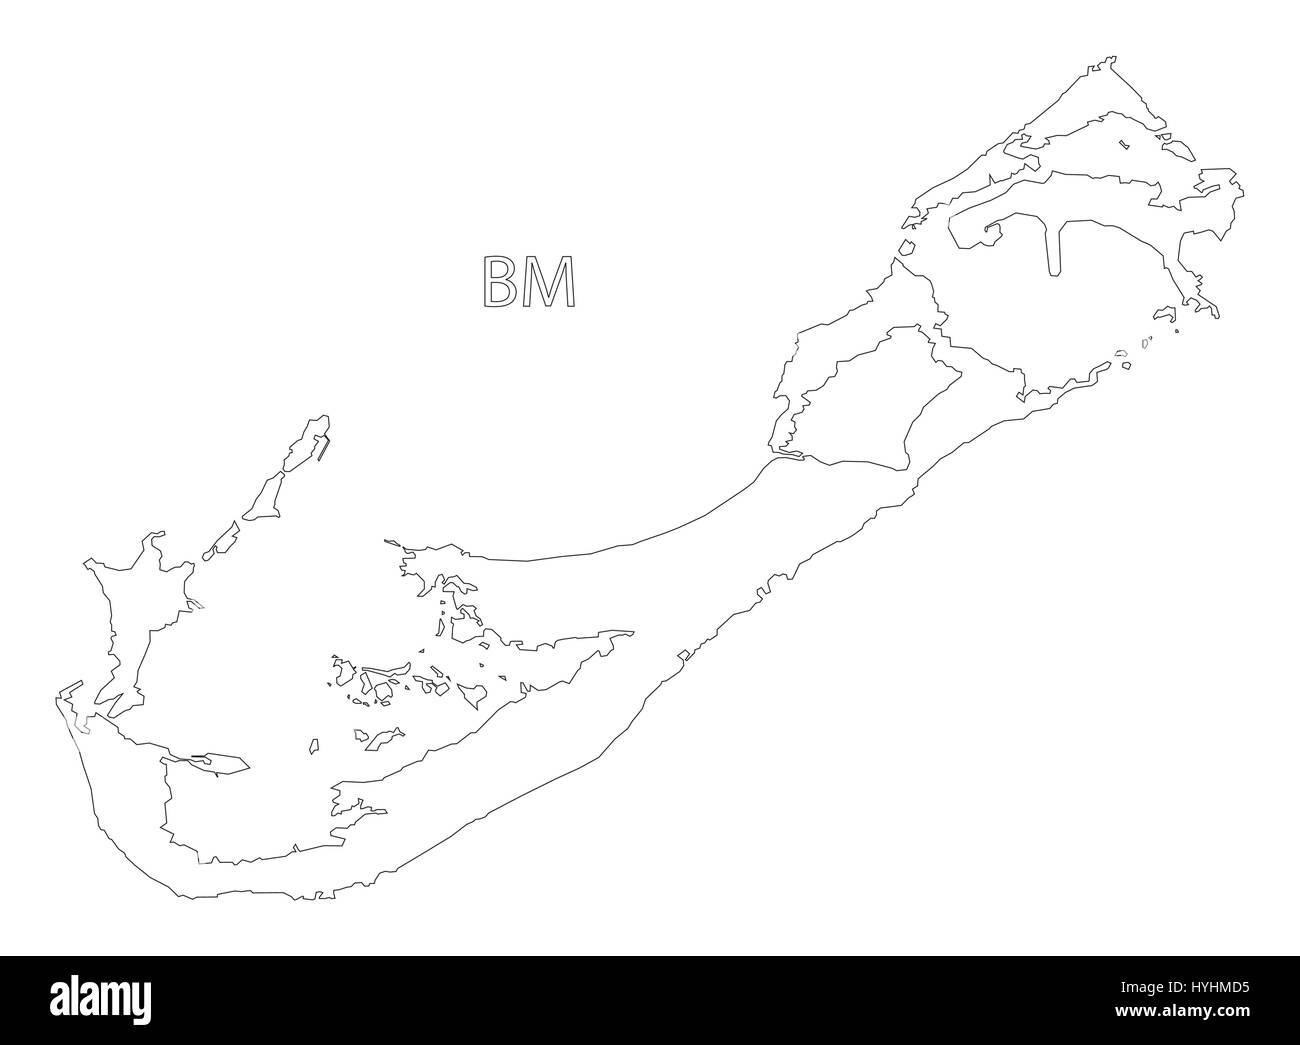 Map Bermuda Cut Out Stock Images & Pictures - Alamy